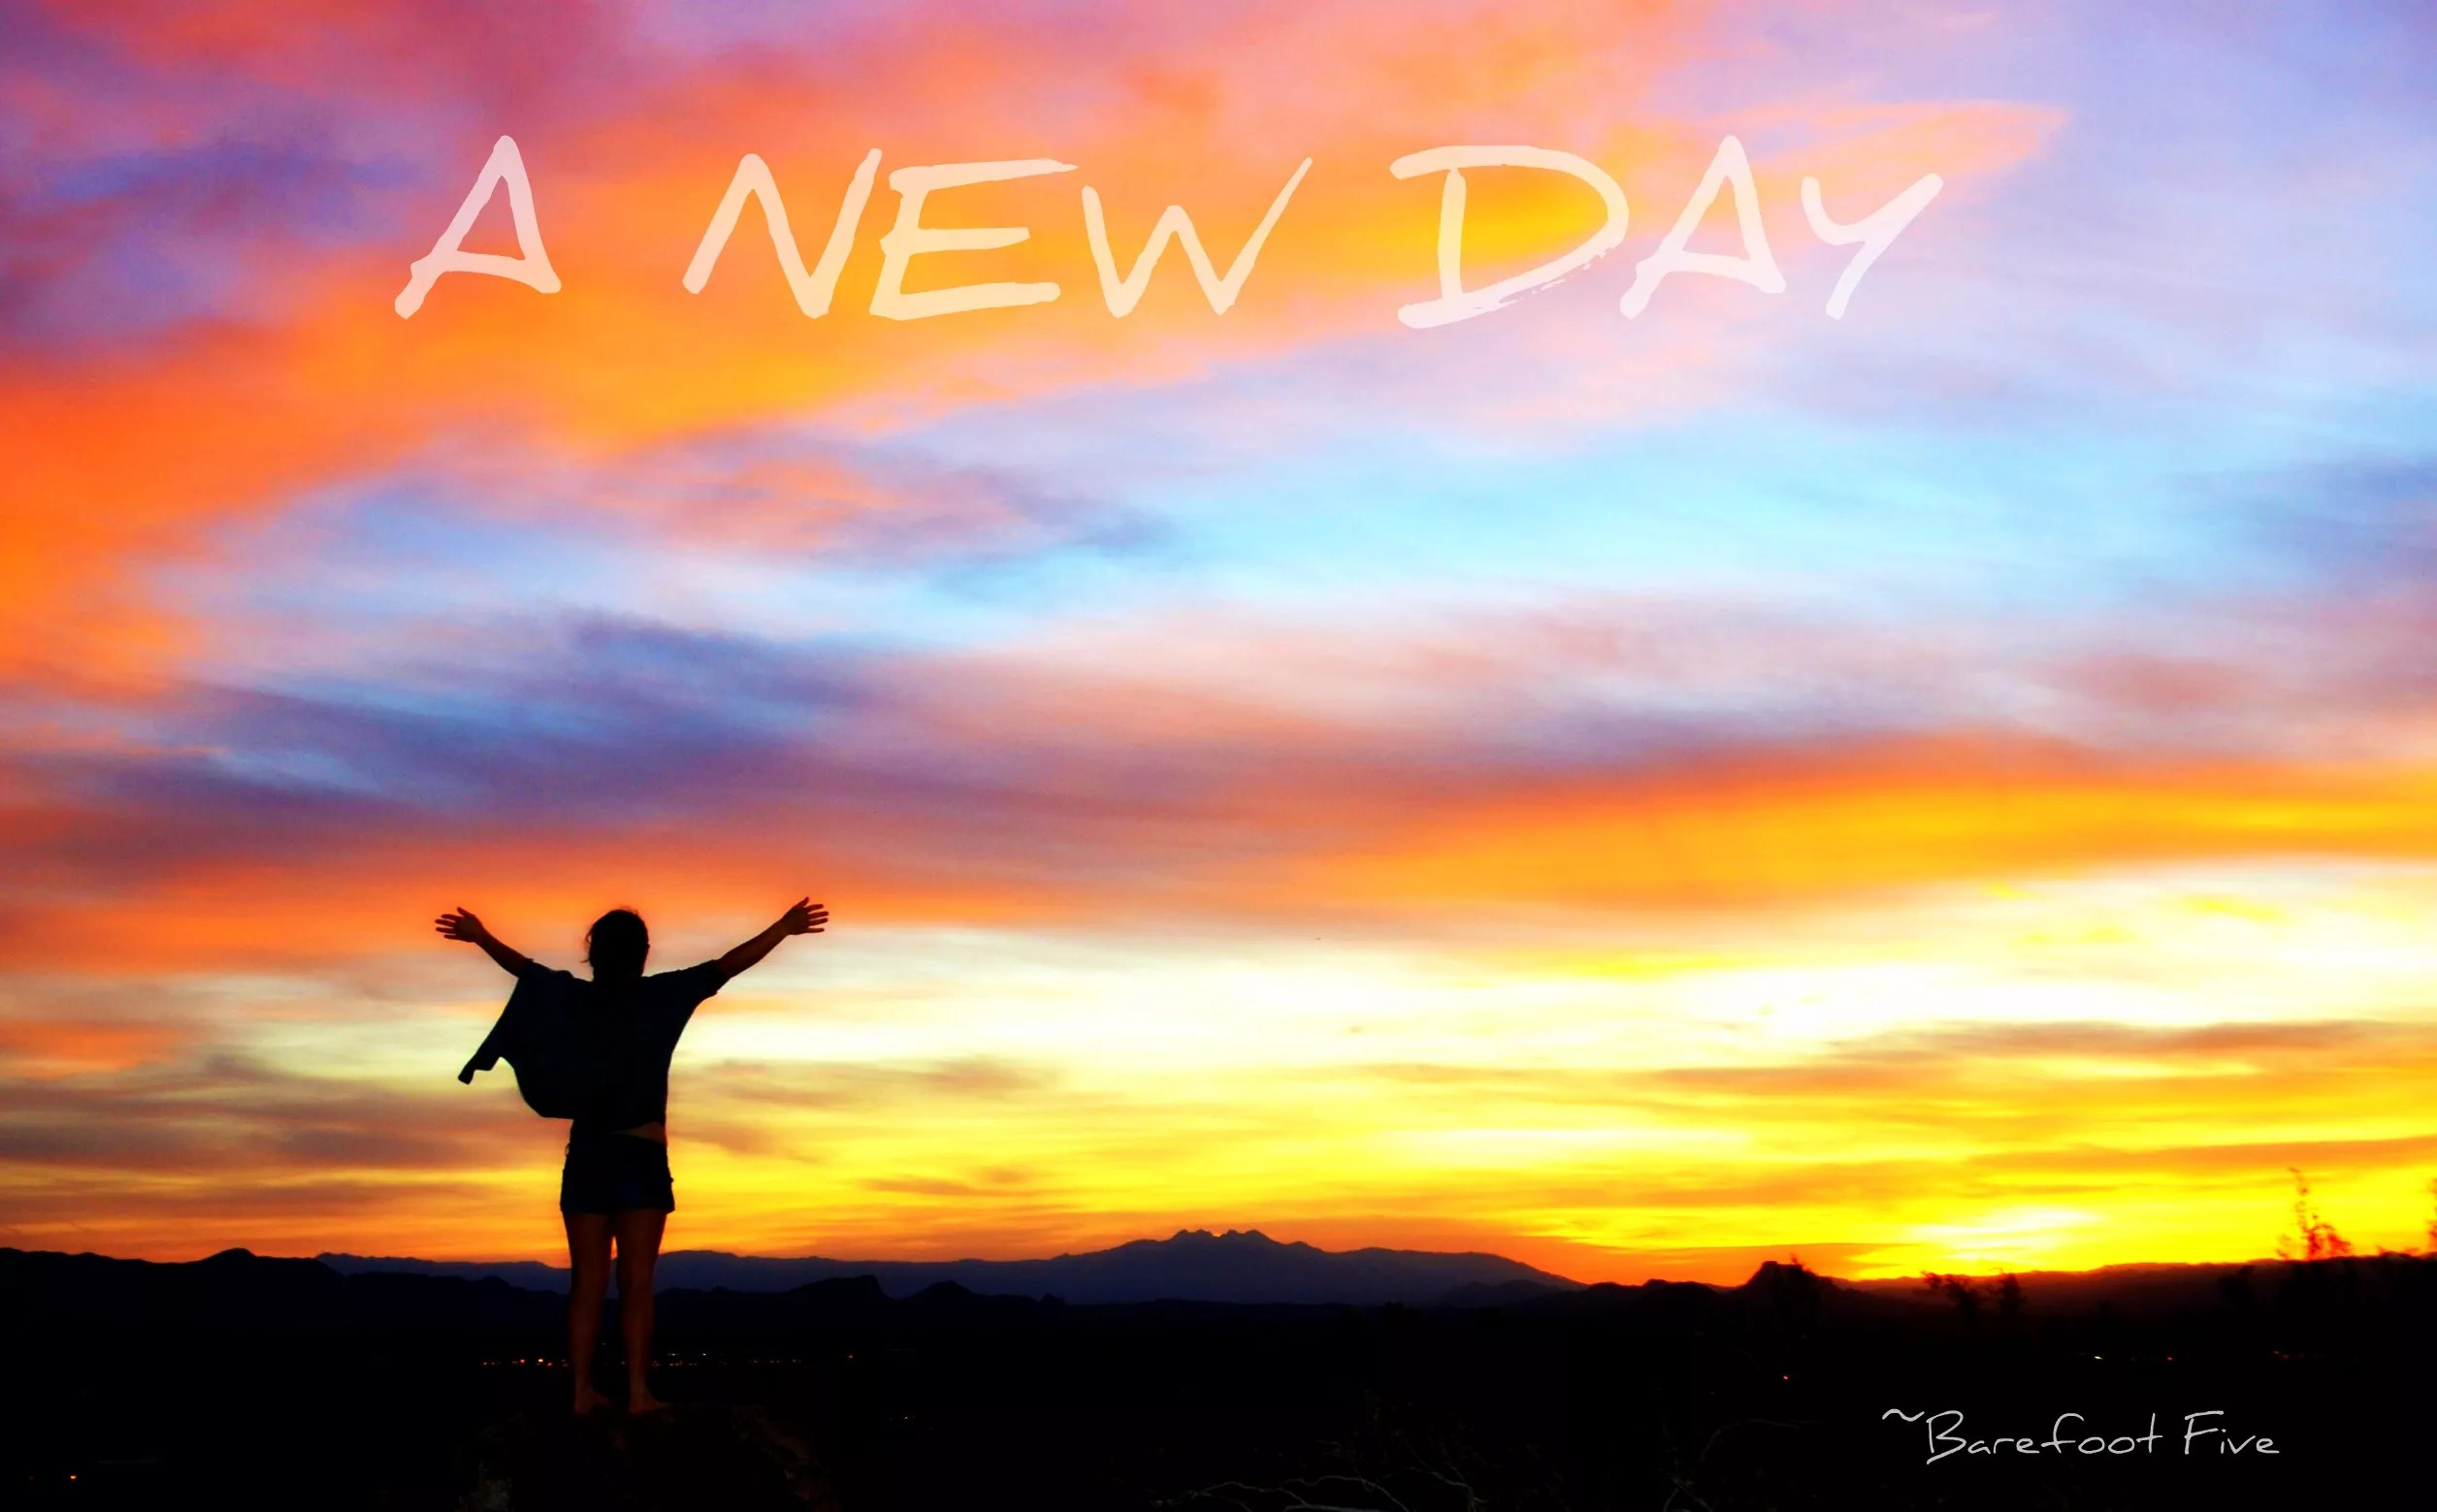 Wallpaper Of Good Morning Quotes Focusvision Revelation Why It S A New Day For